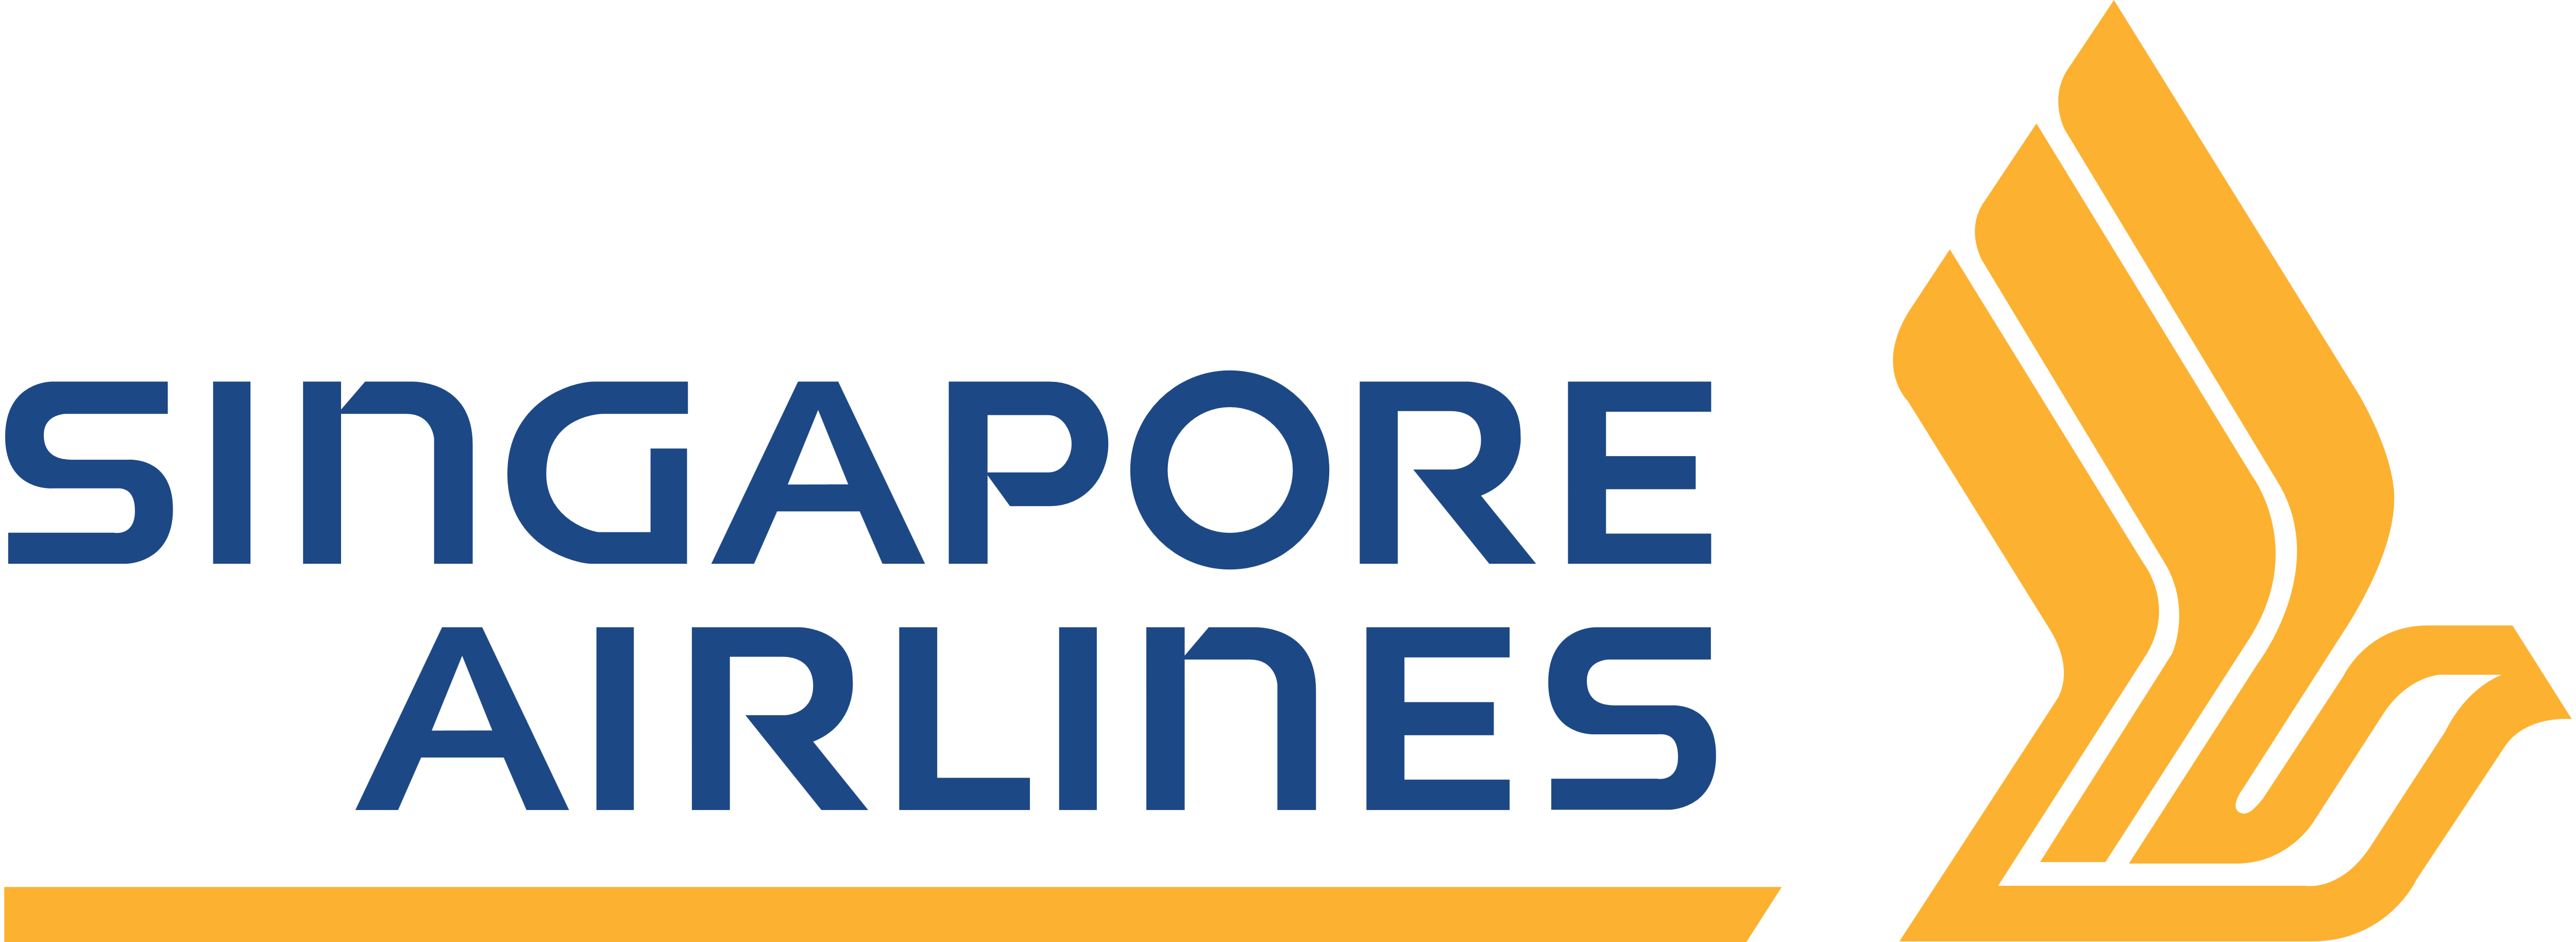 singapore airlines � logos download